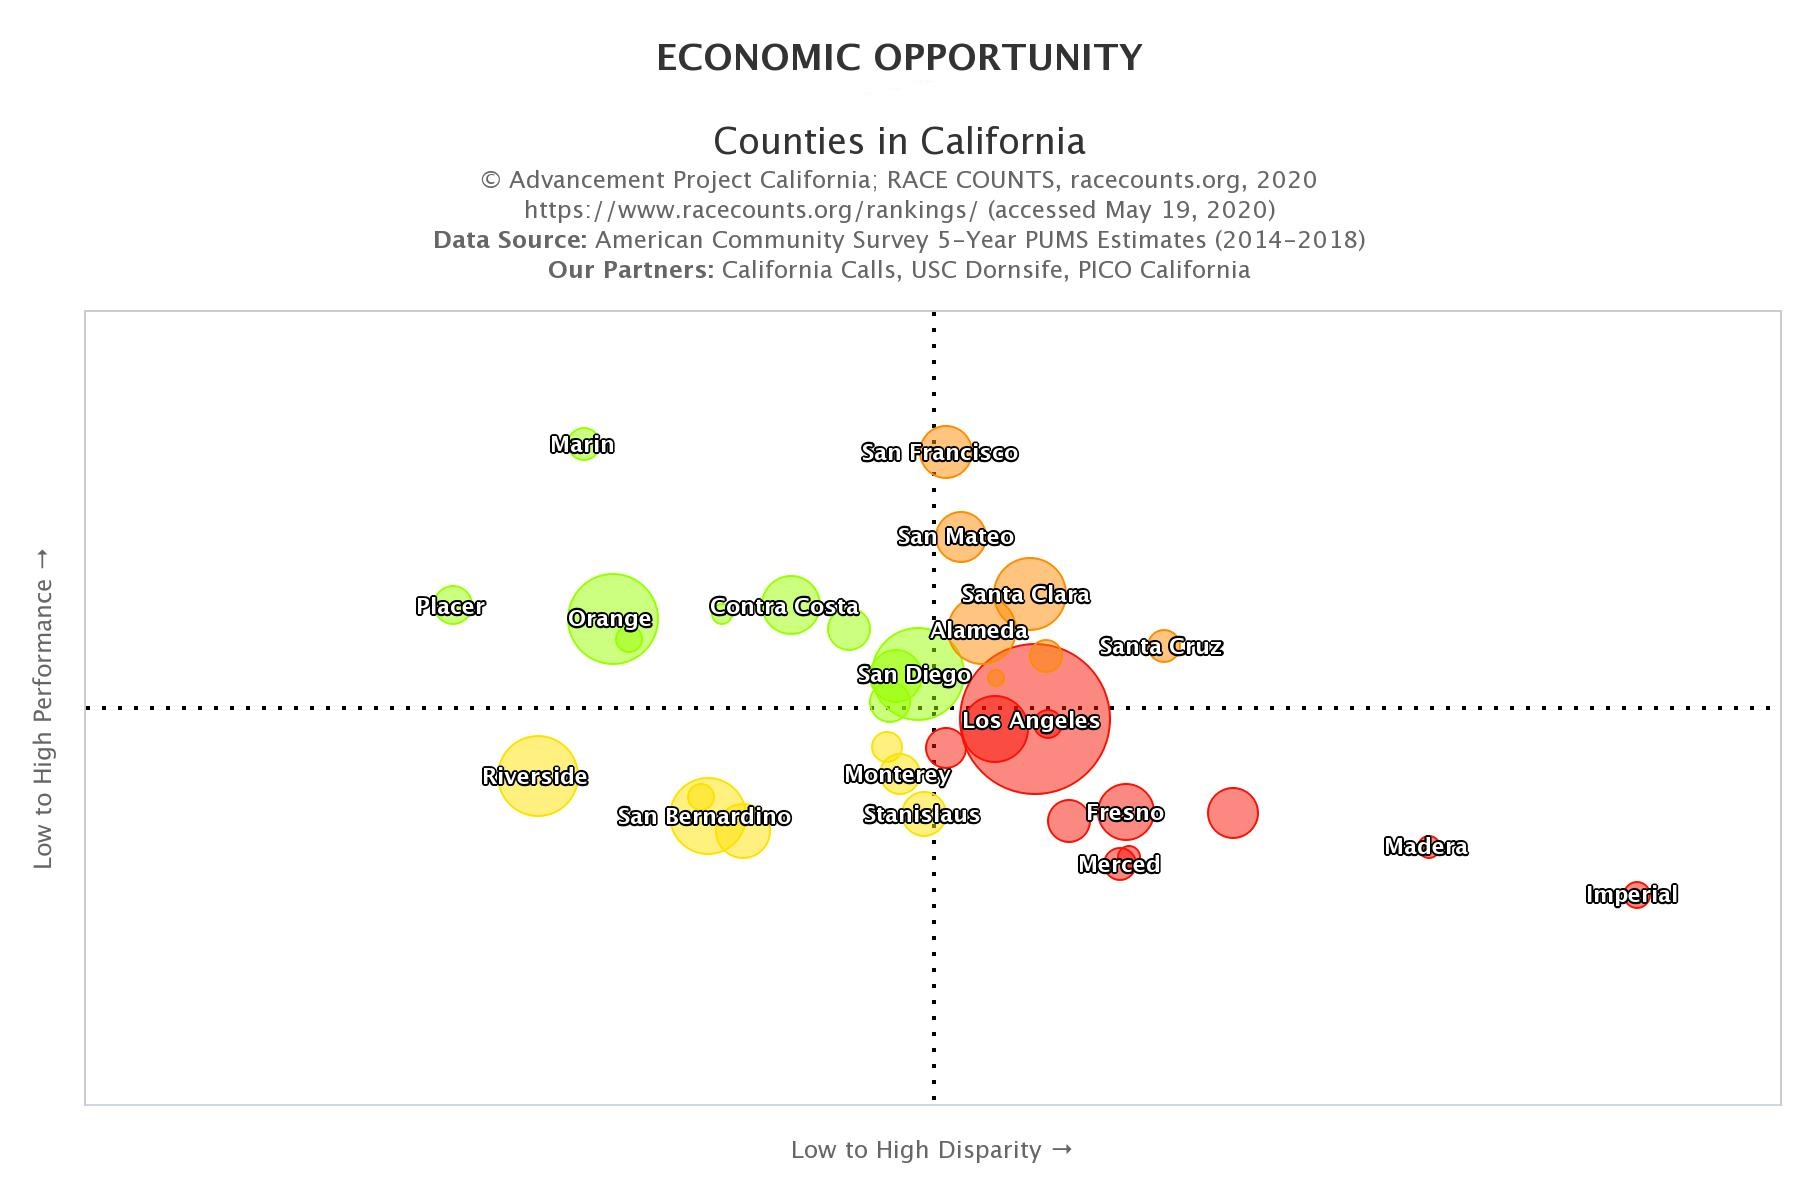 racecounts-economic-opportunity-officials-and-managers-scatterplot